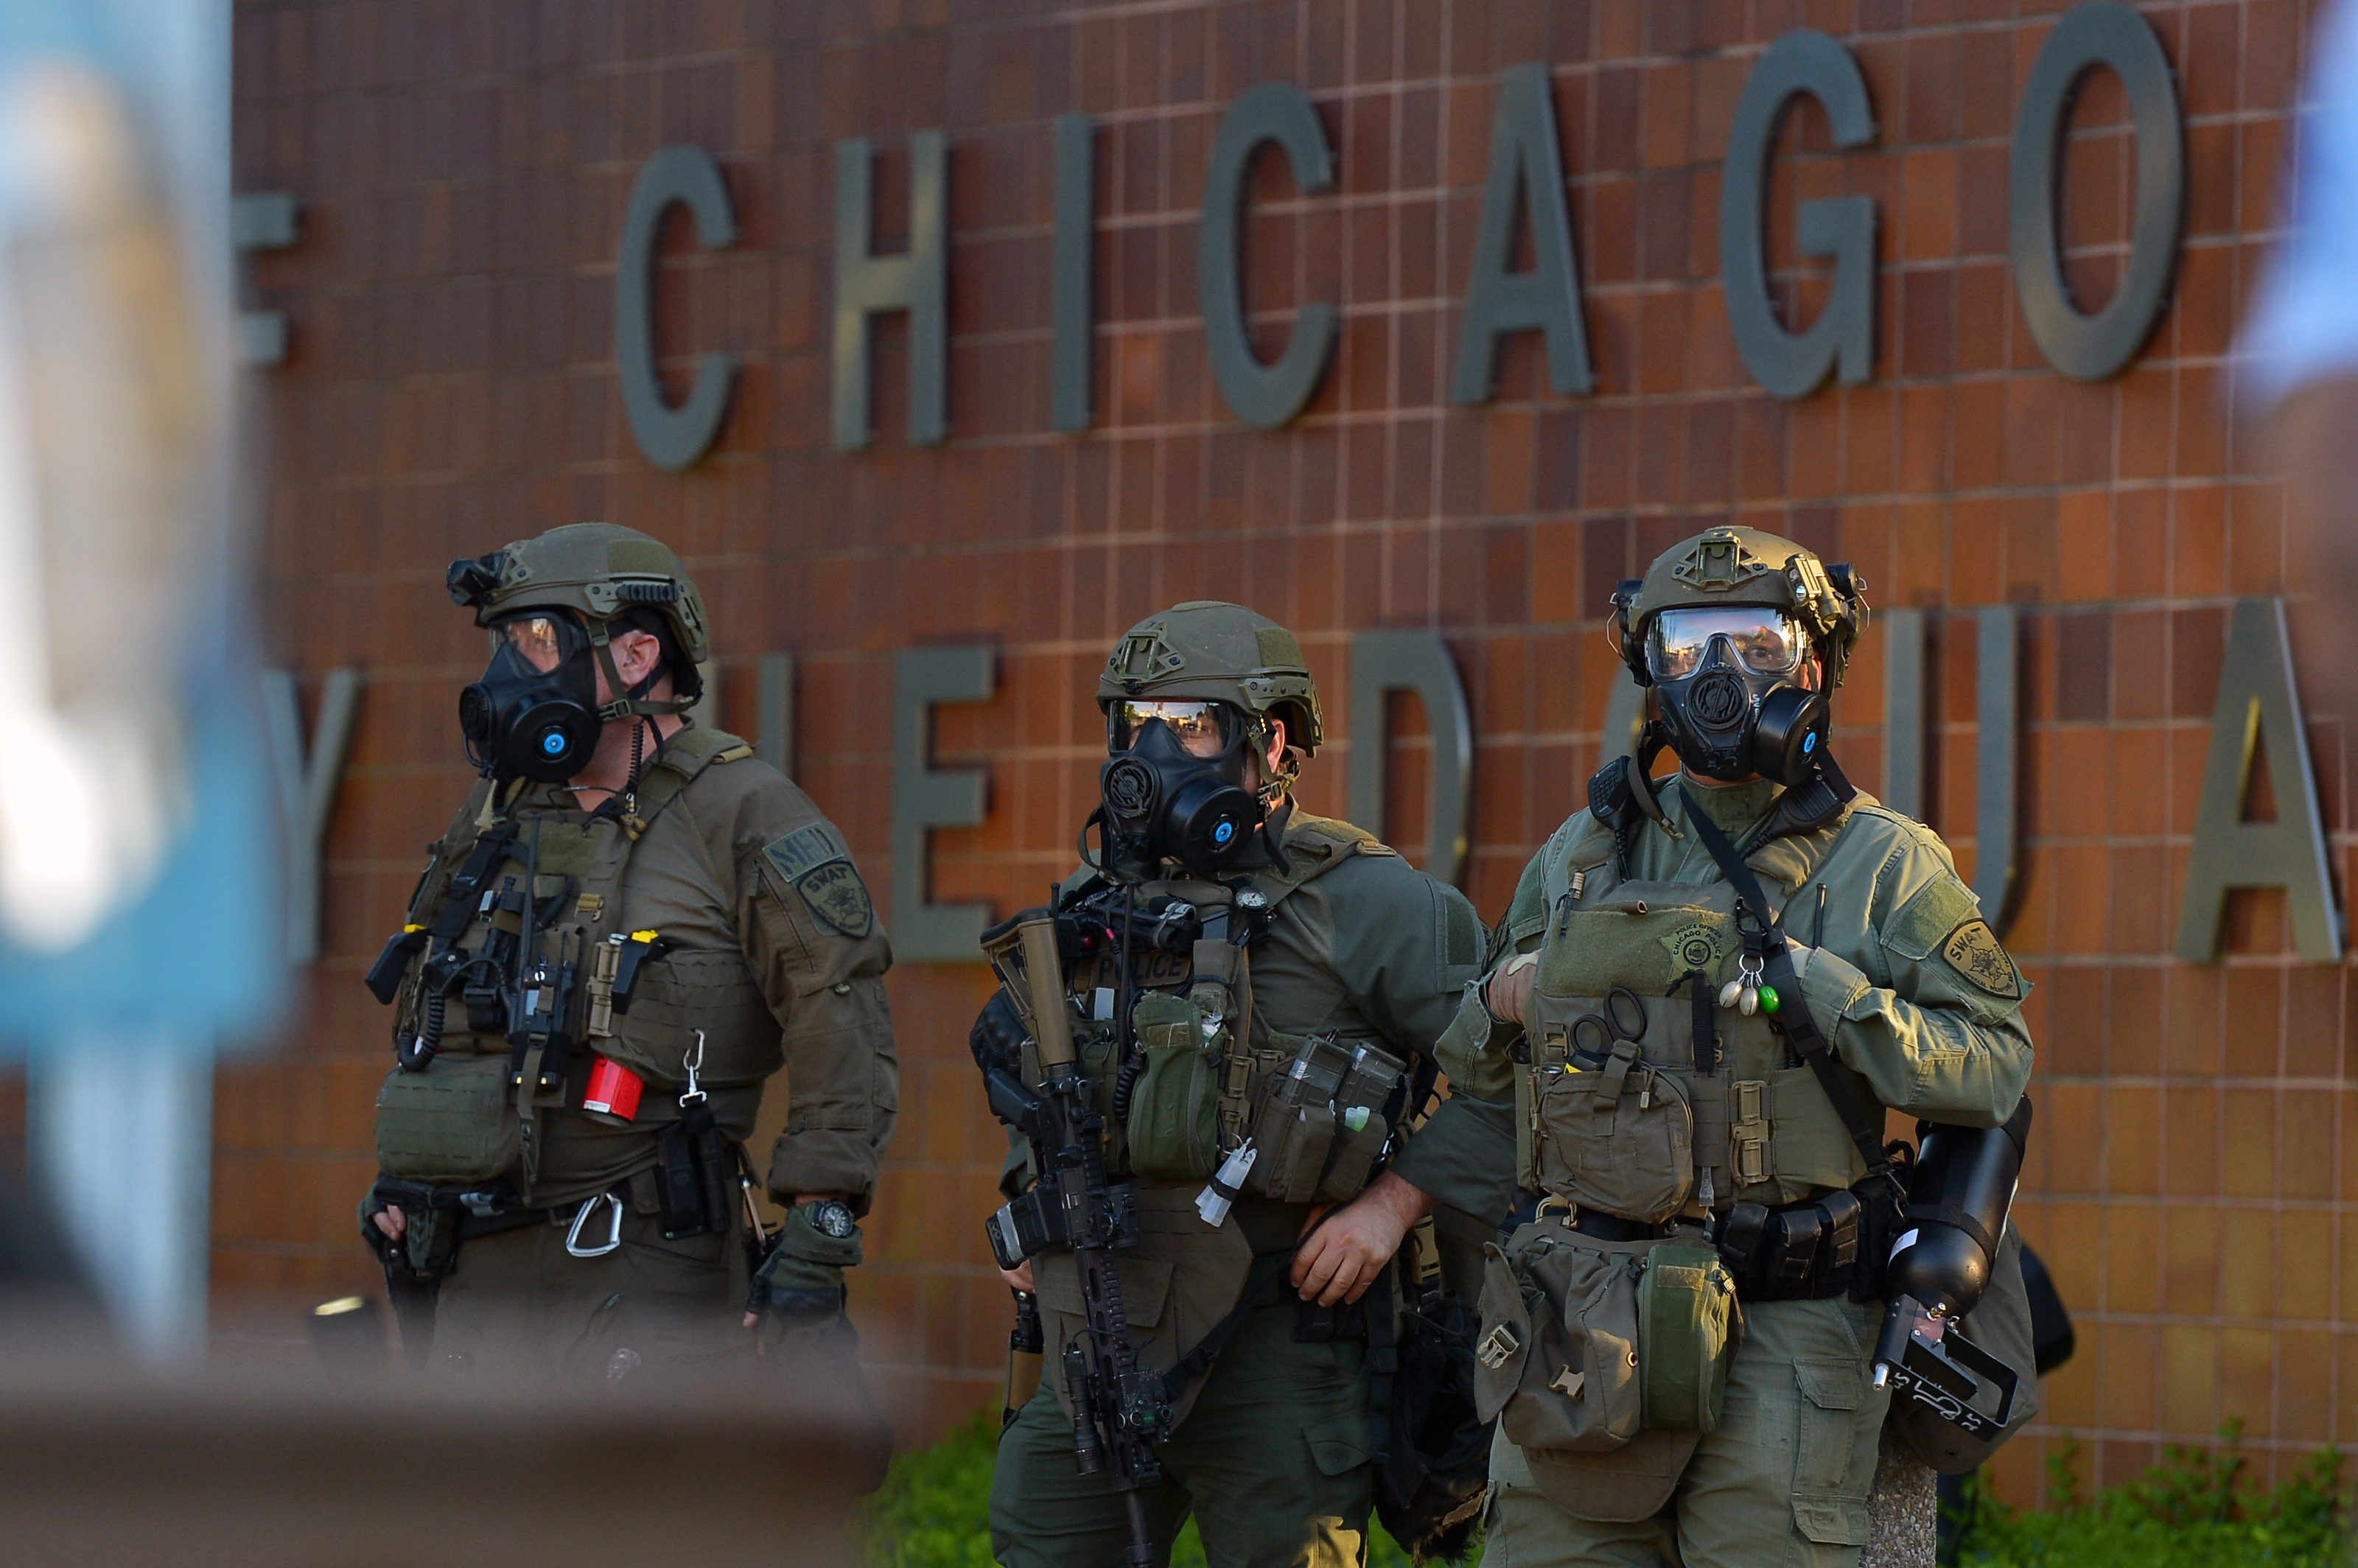 Members from Chicago Police SWAT Team outside of the Chicago Police Department headquarters, at 35th and Michigan during the George Floyd protests in May 2020.